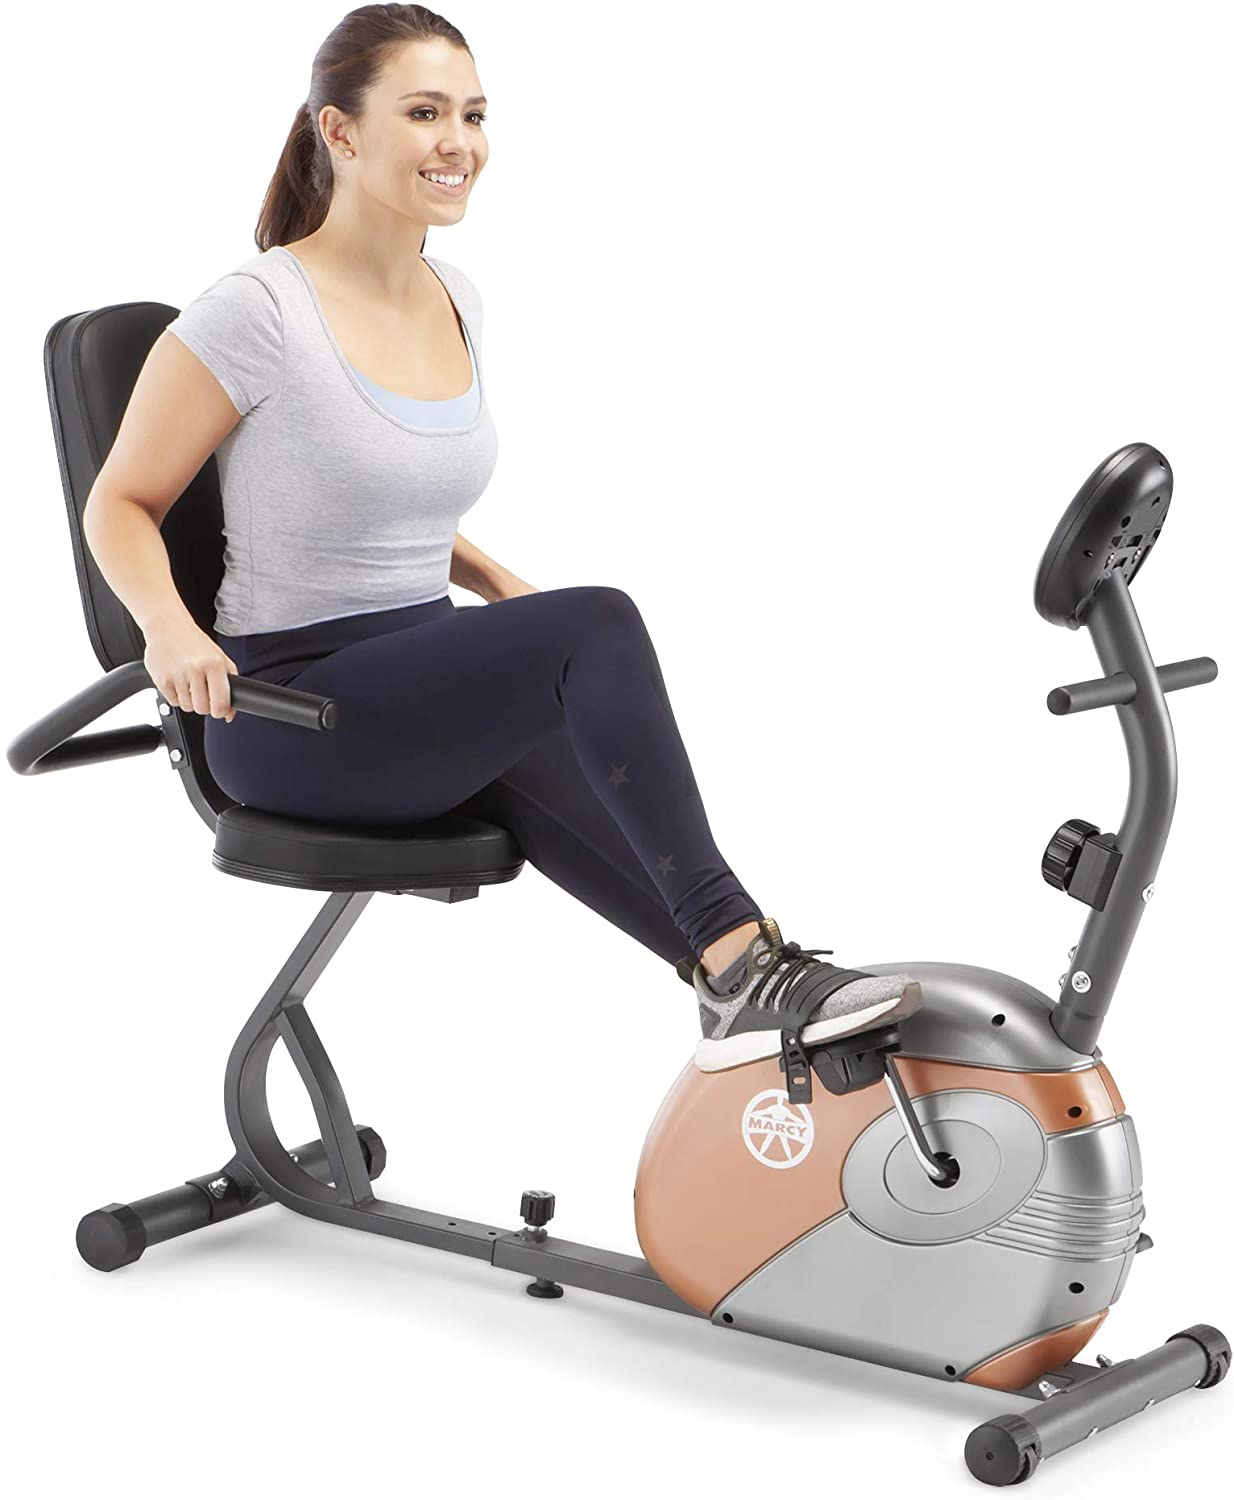 5 Best Exercise Bike For Bad Knees - Comparisons for 2020 2